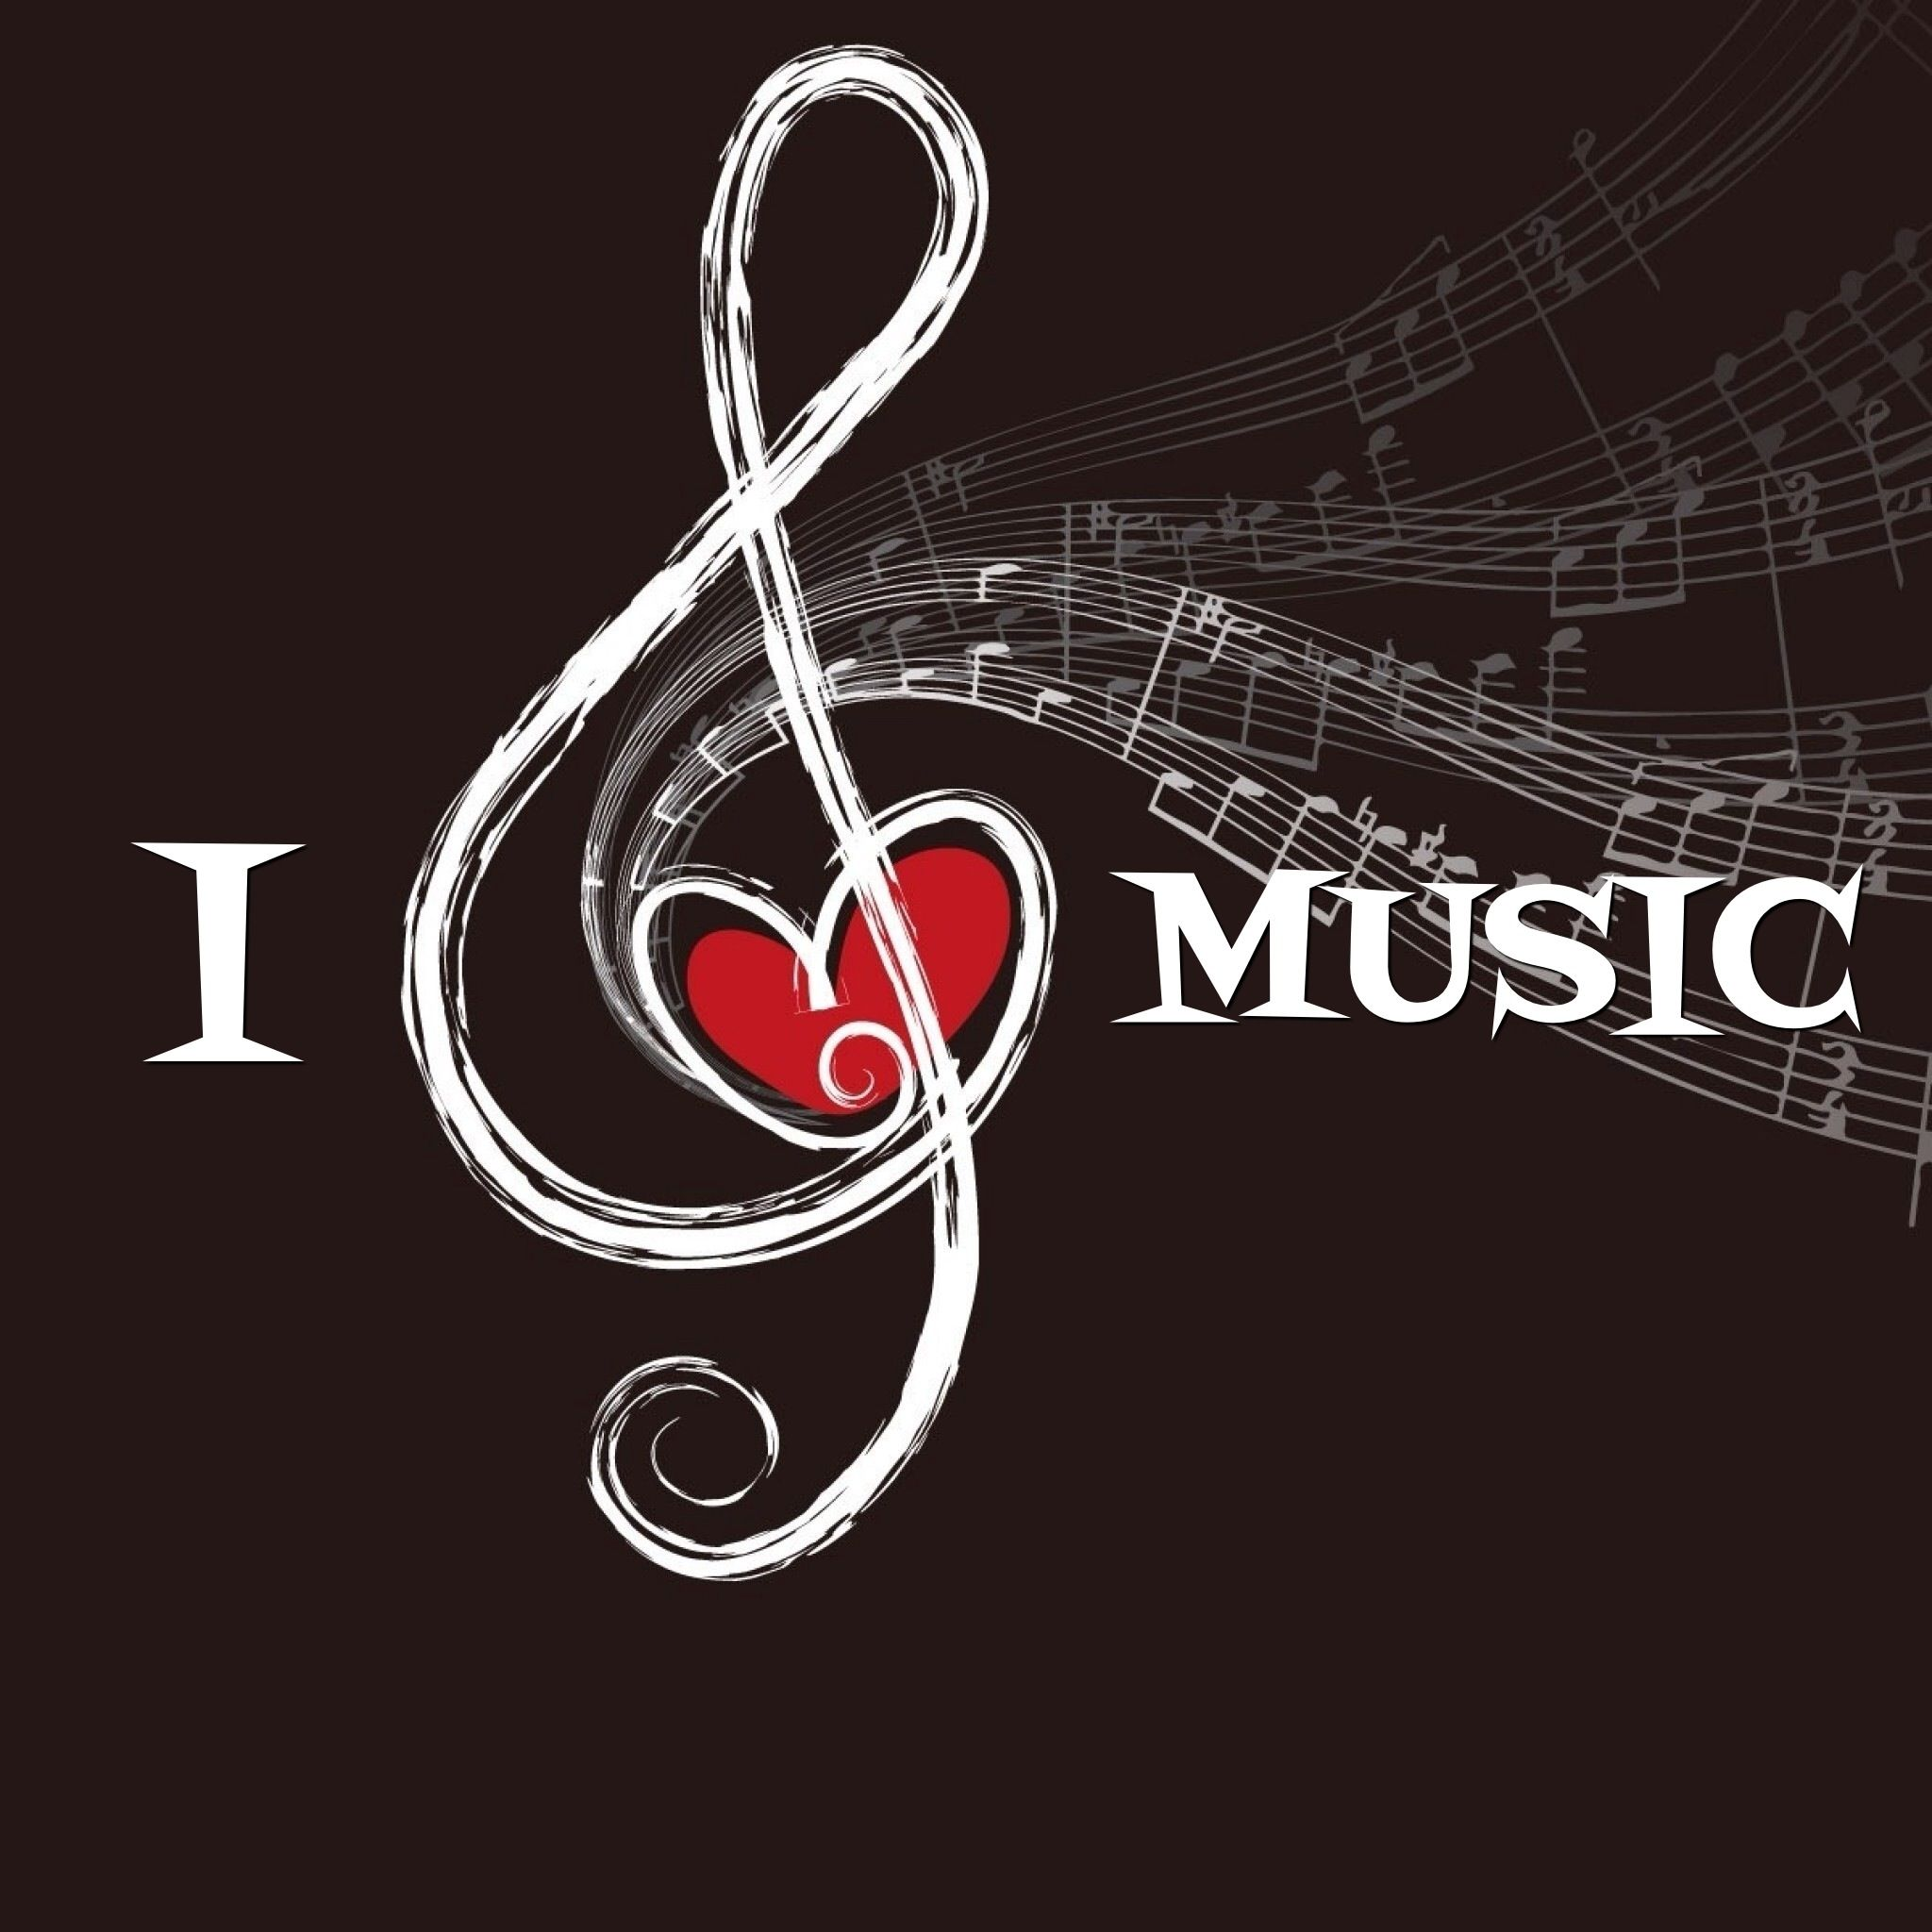 Love Music Quotes 41 Cute Valentine Iphone Wallpapers Free To Download  Wallpaper